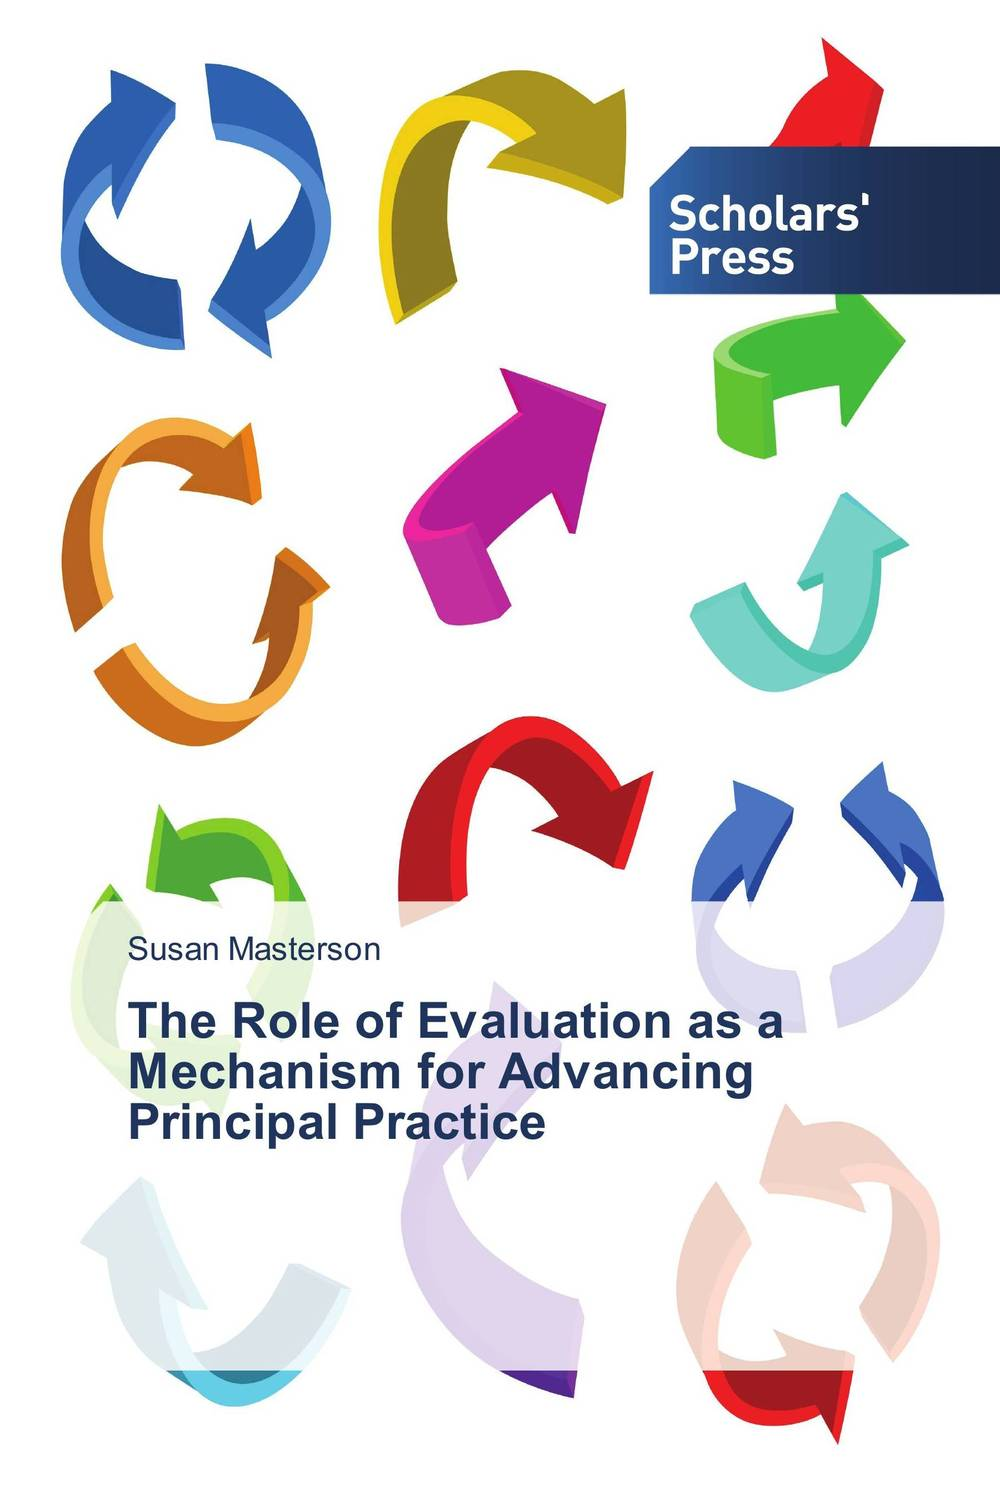 The Role of Evaluation as a Mechanism for Advancing Principal Practice the role of evaluation as a mechanism for advancing principal practice